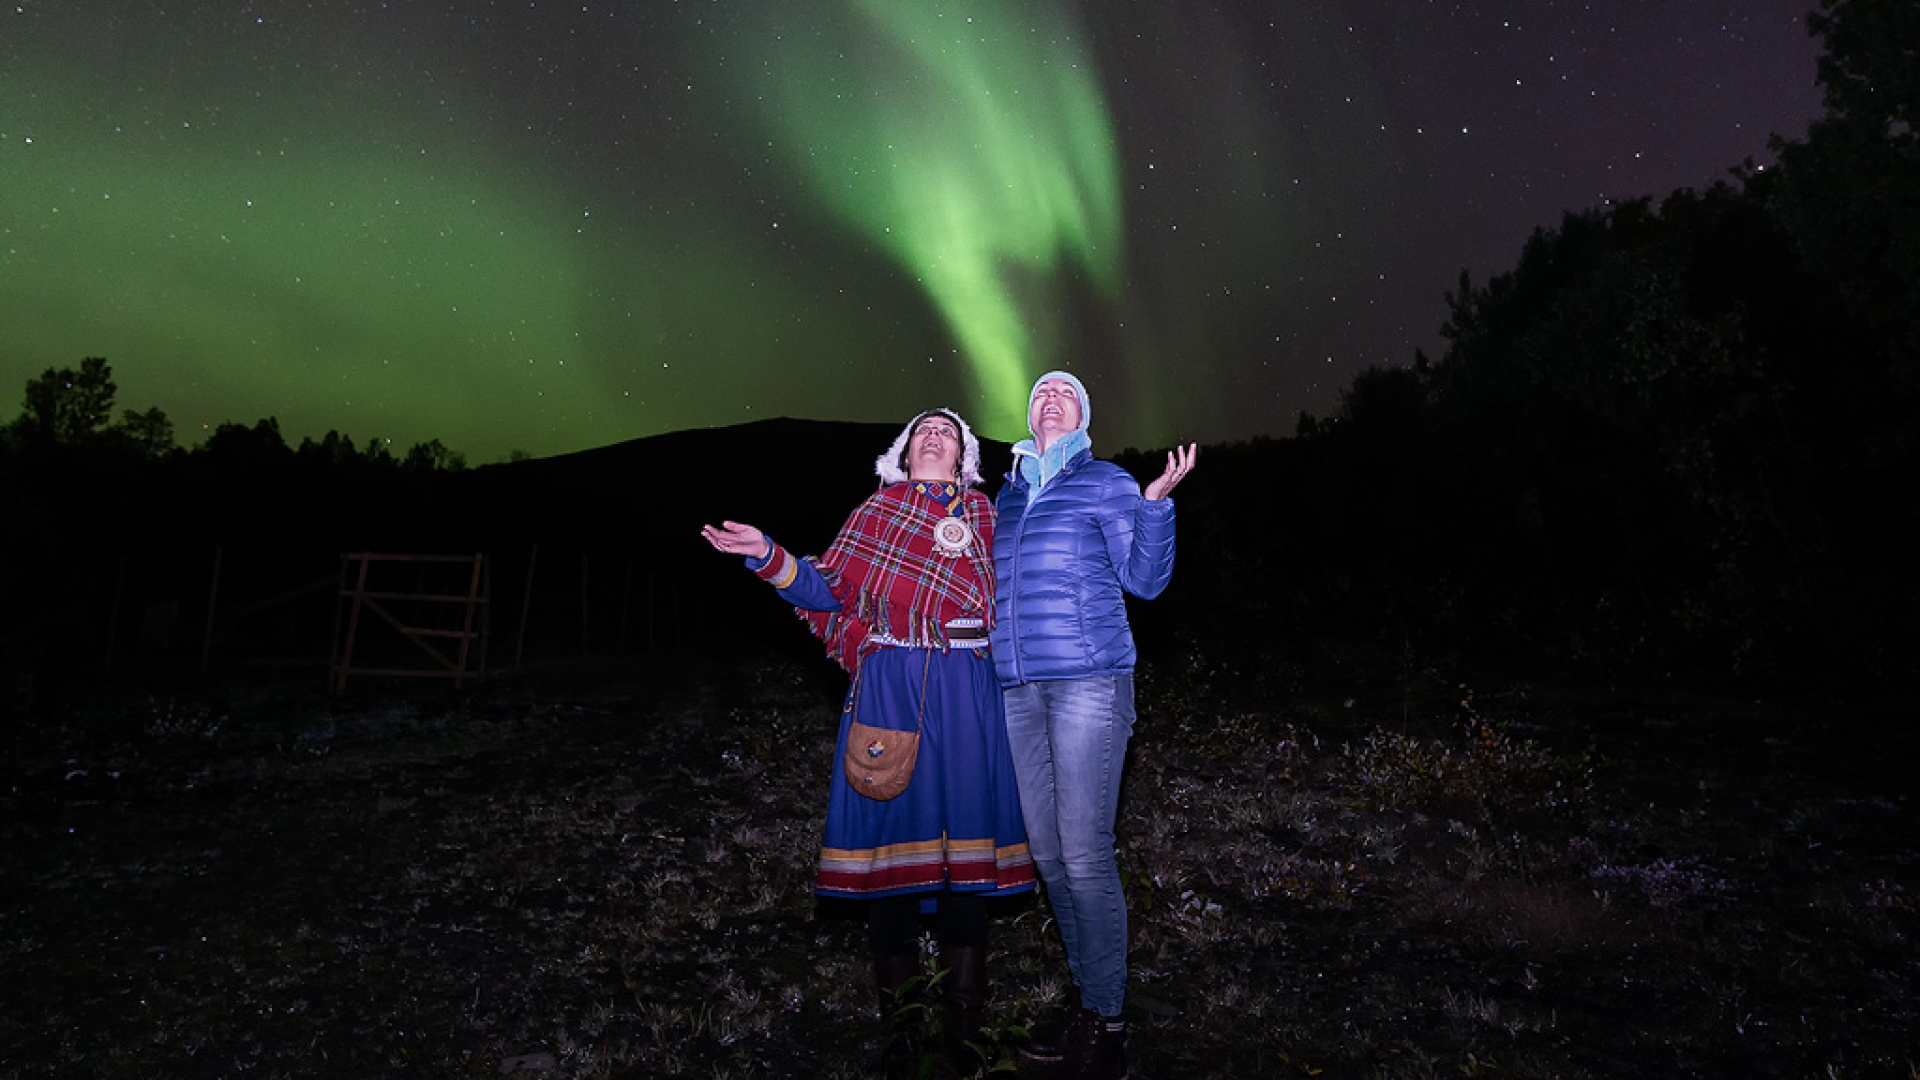 Man and woman in sami dress under the Northern Lights